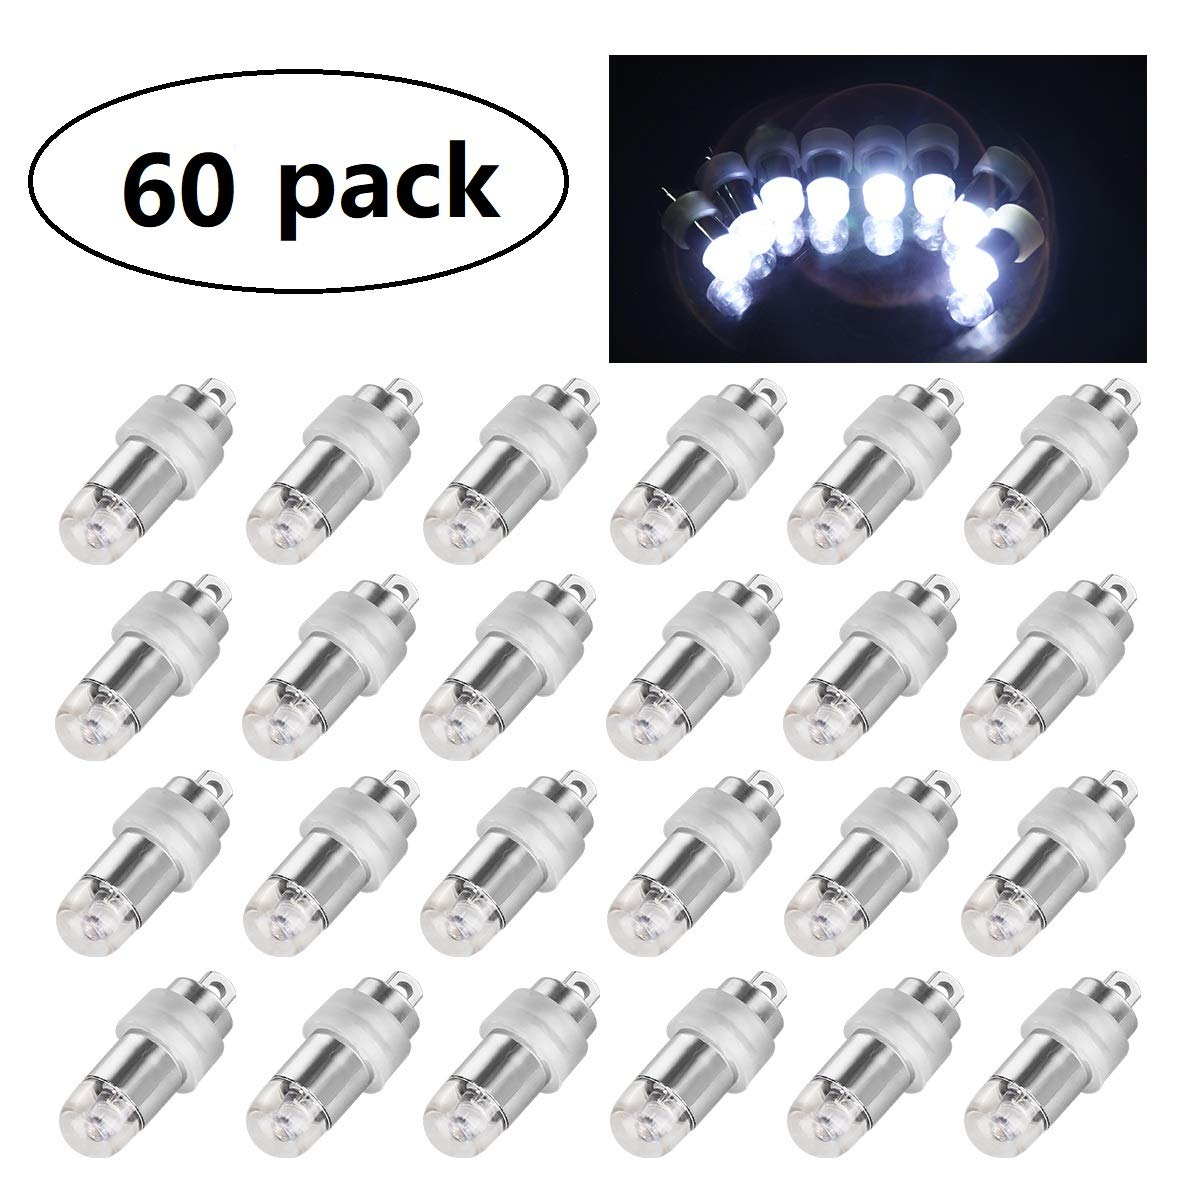 60x Cool White Mini LED Party Lights for Balloons Paper Lanterns Floral Party Decoration, Waterproof and Submersible